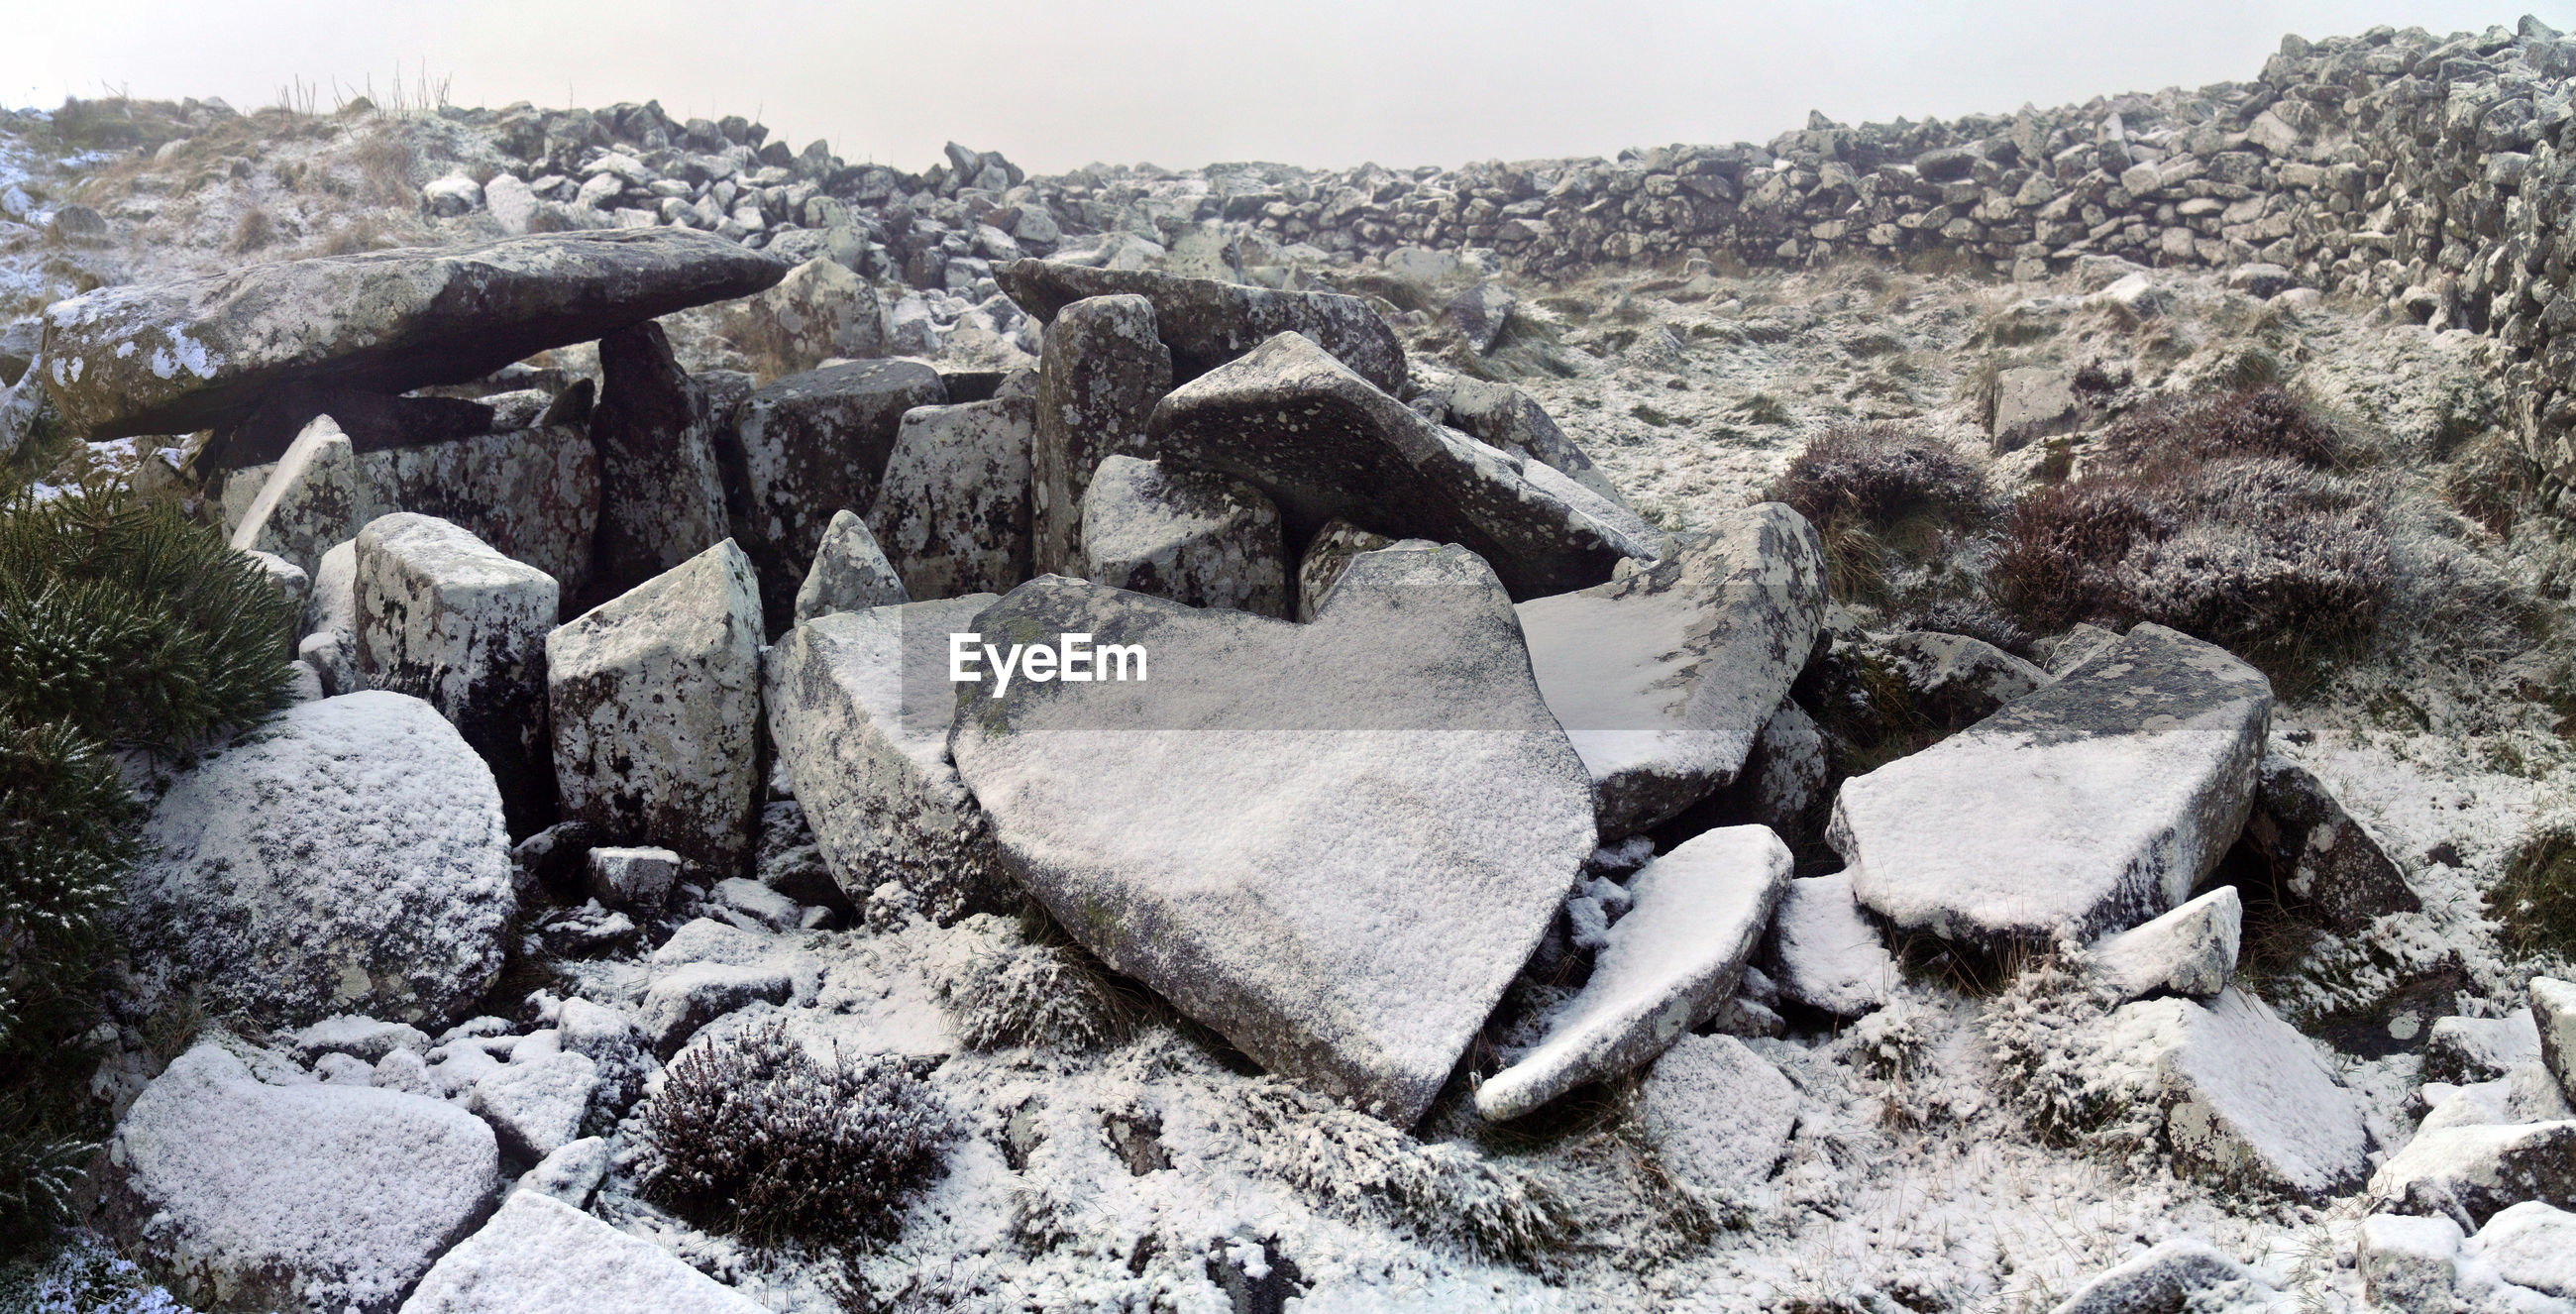 Close-up of rocks on land against sky